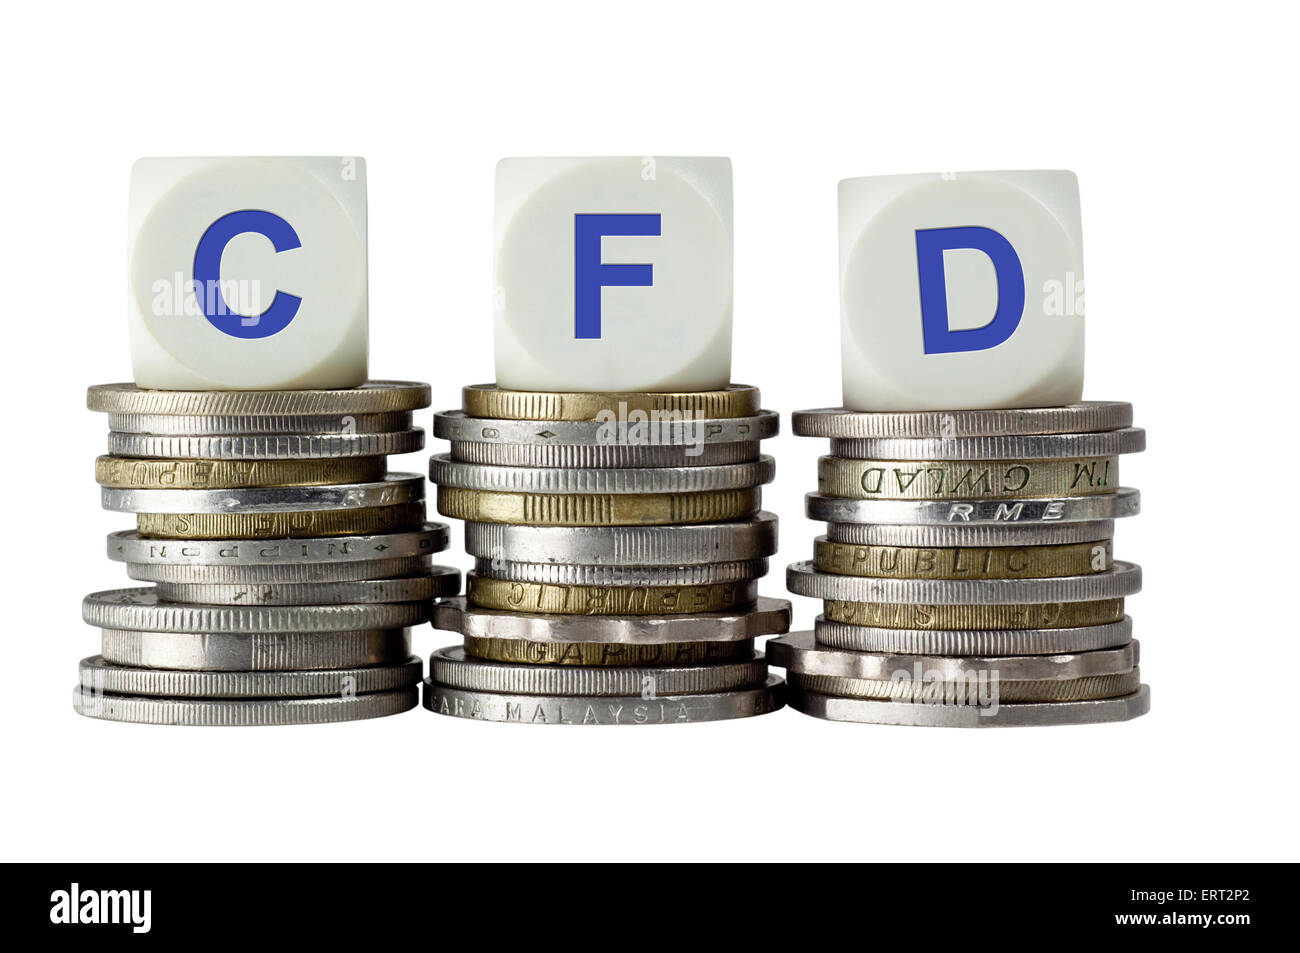 Stacks of coins with the letters CFD isolated on white background - Stock Image